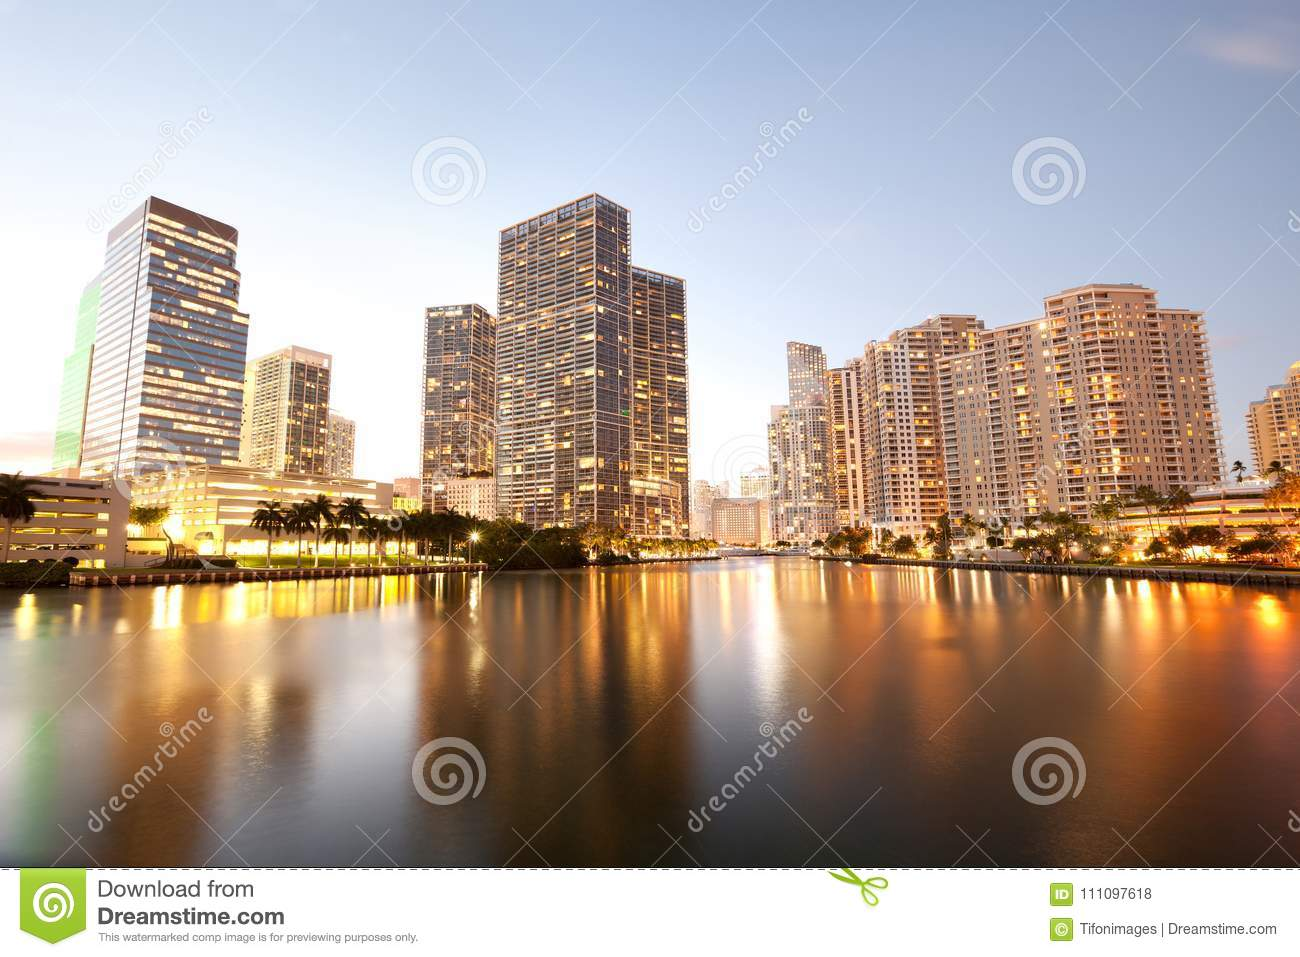 Downtown and real estates developments at Brickell Key